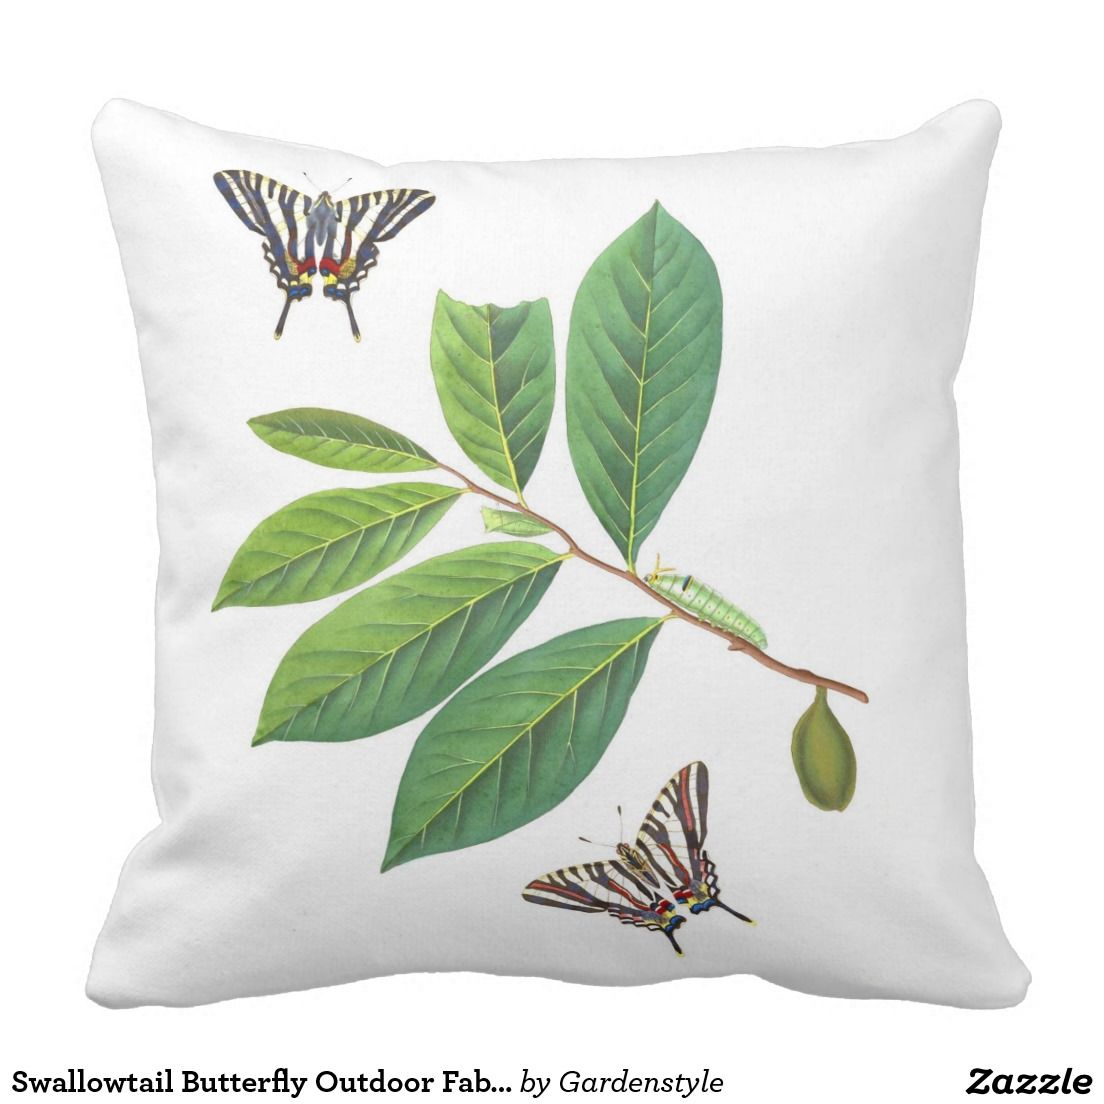 Swallowtail Butterfly Outdoor Fabric Throw Pillow Outdoor Pillows and Cushions Pinterest ...